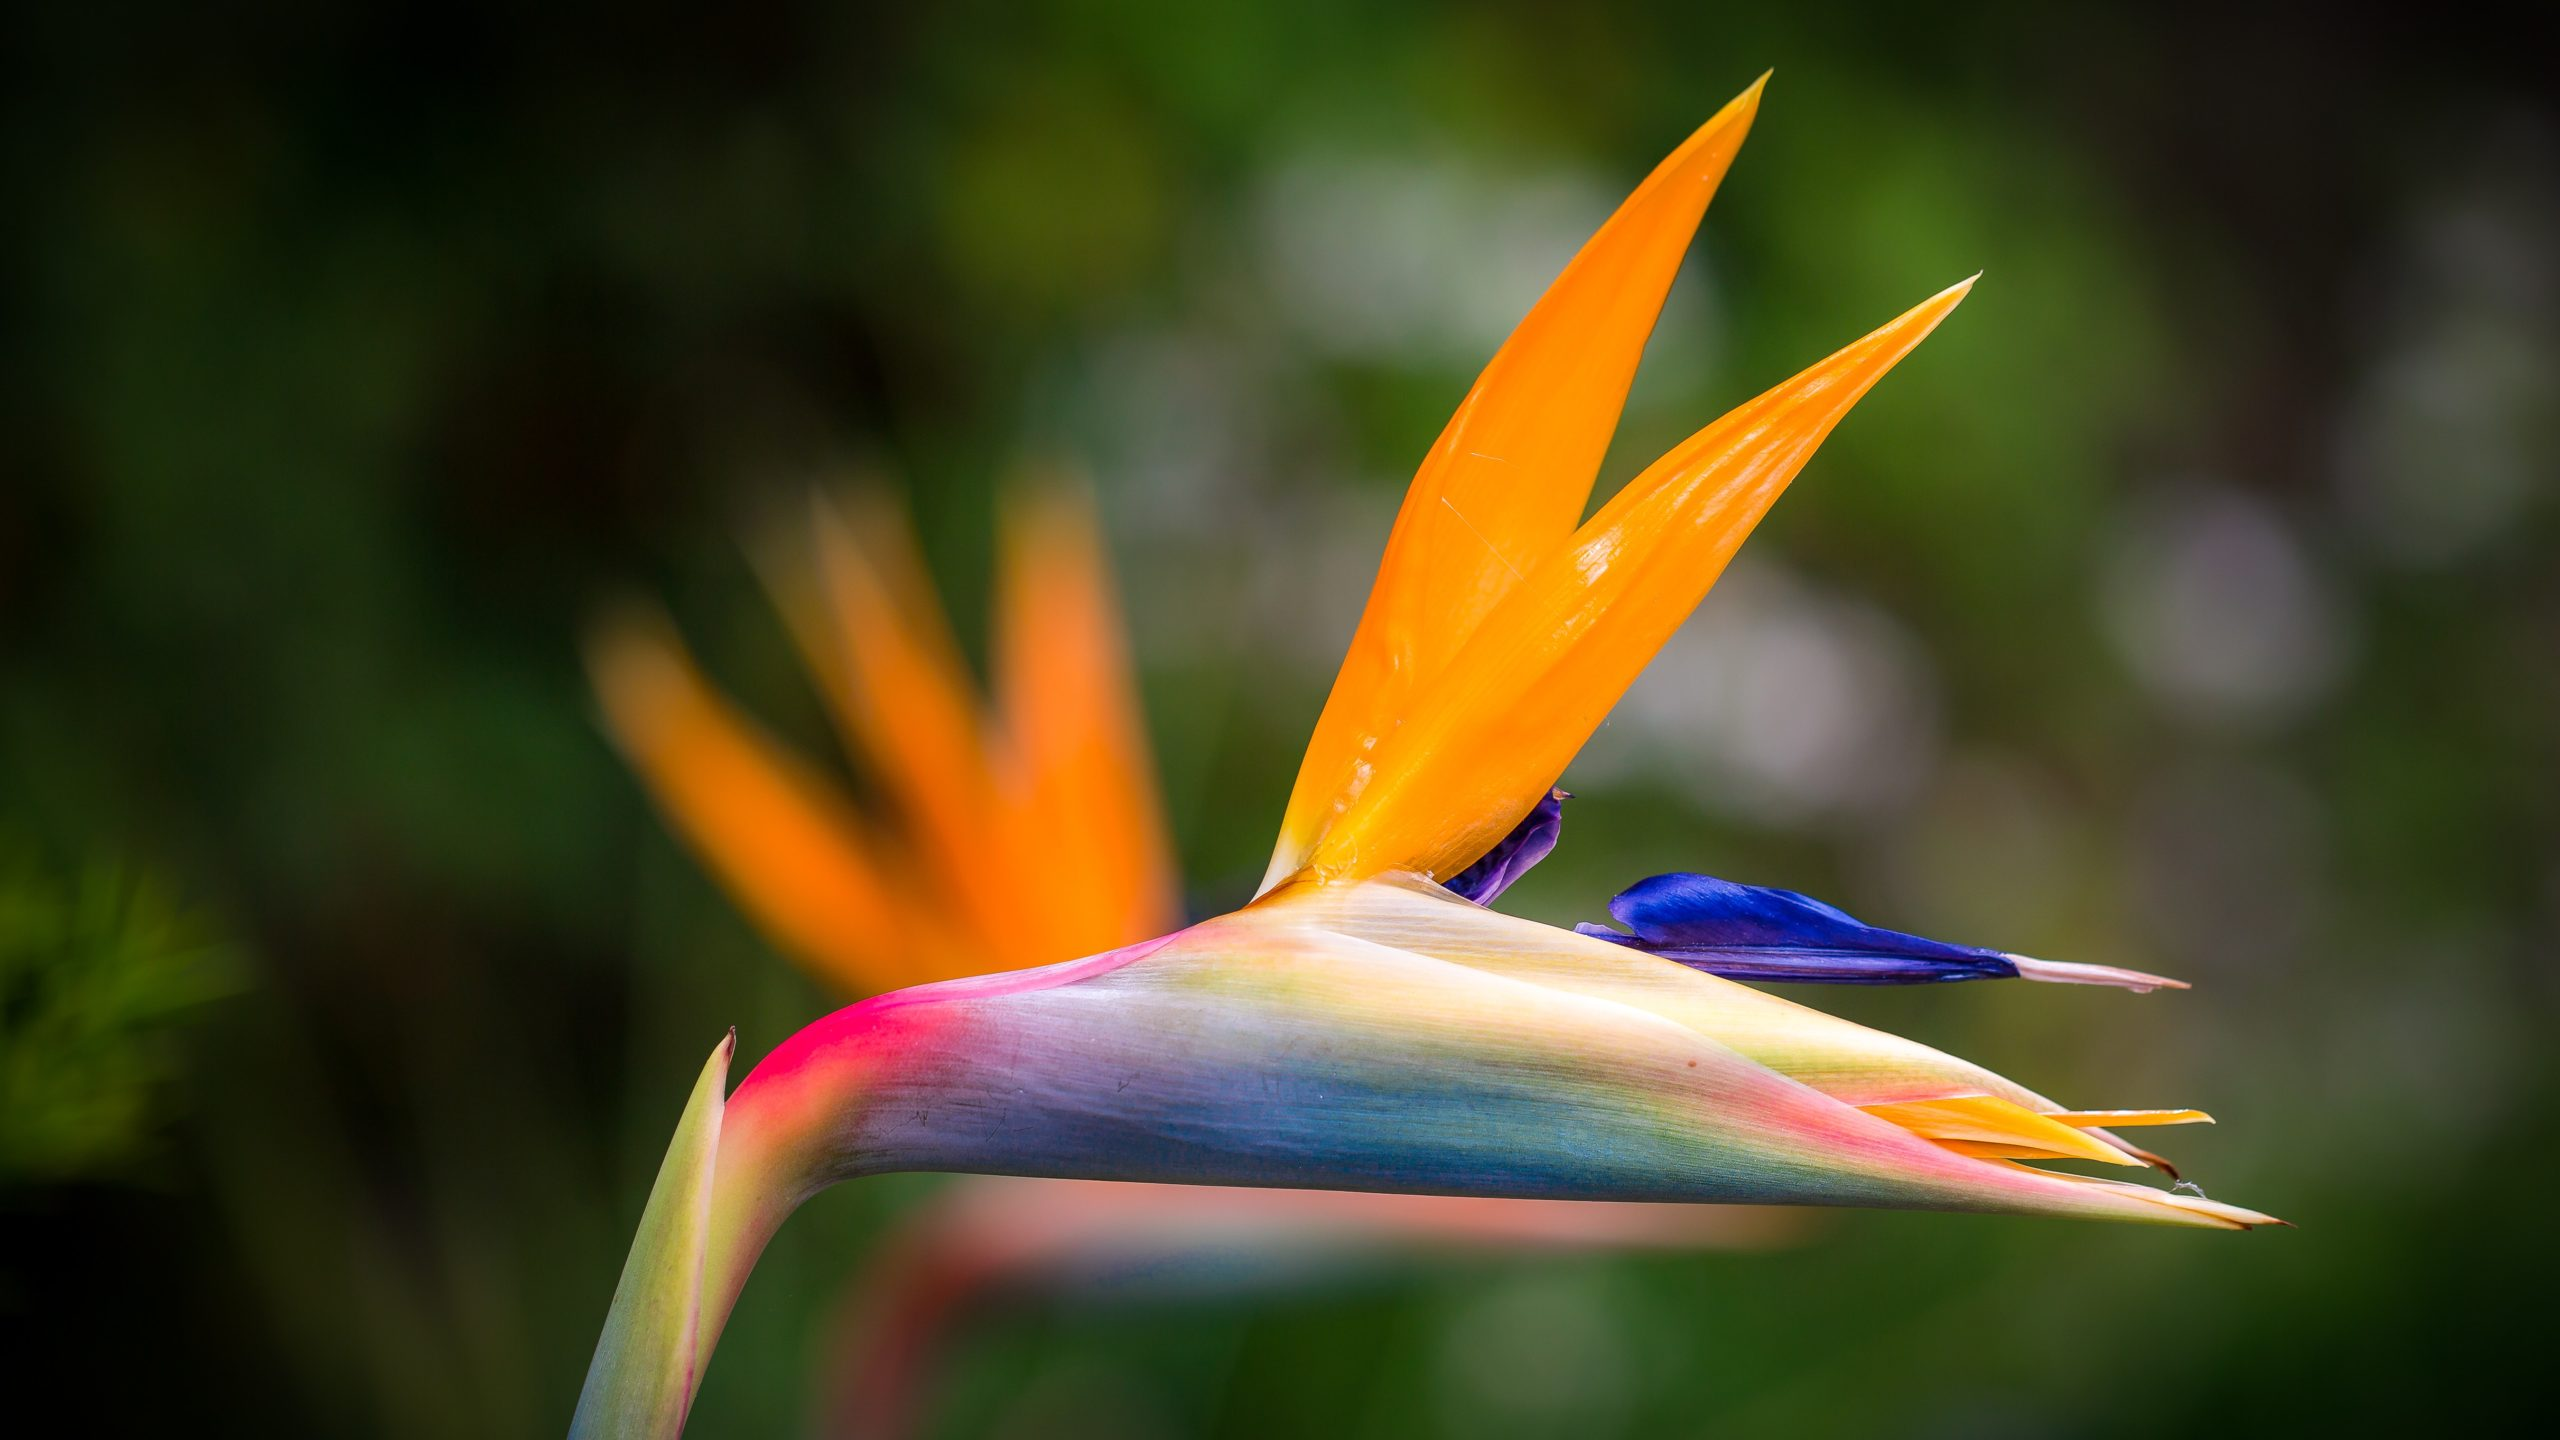 bird of paradise flower representing passion and authenticity